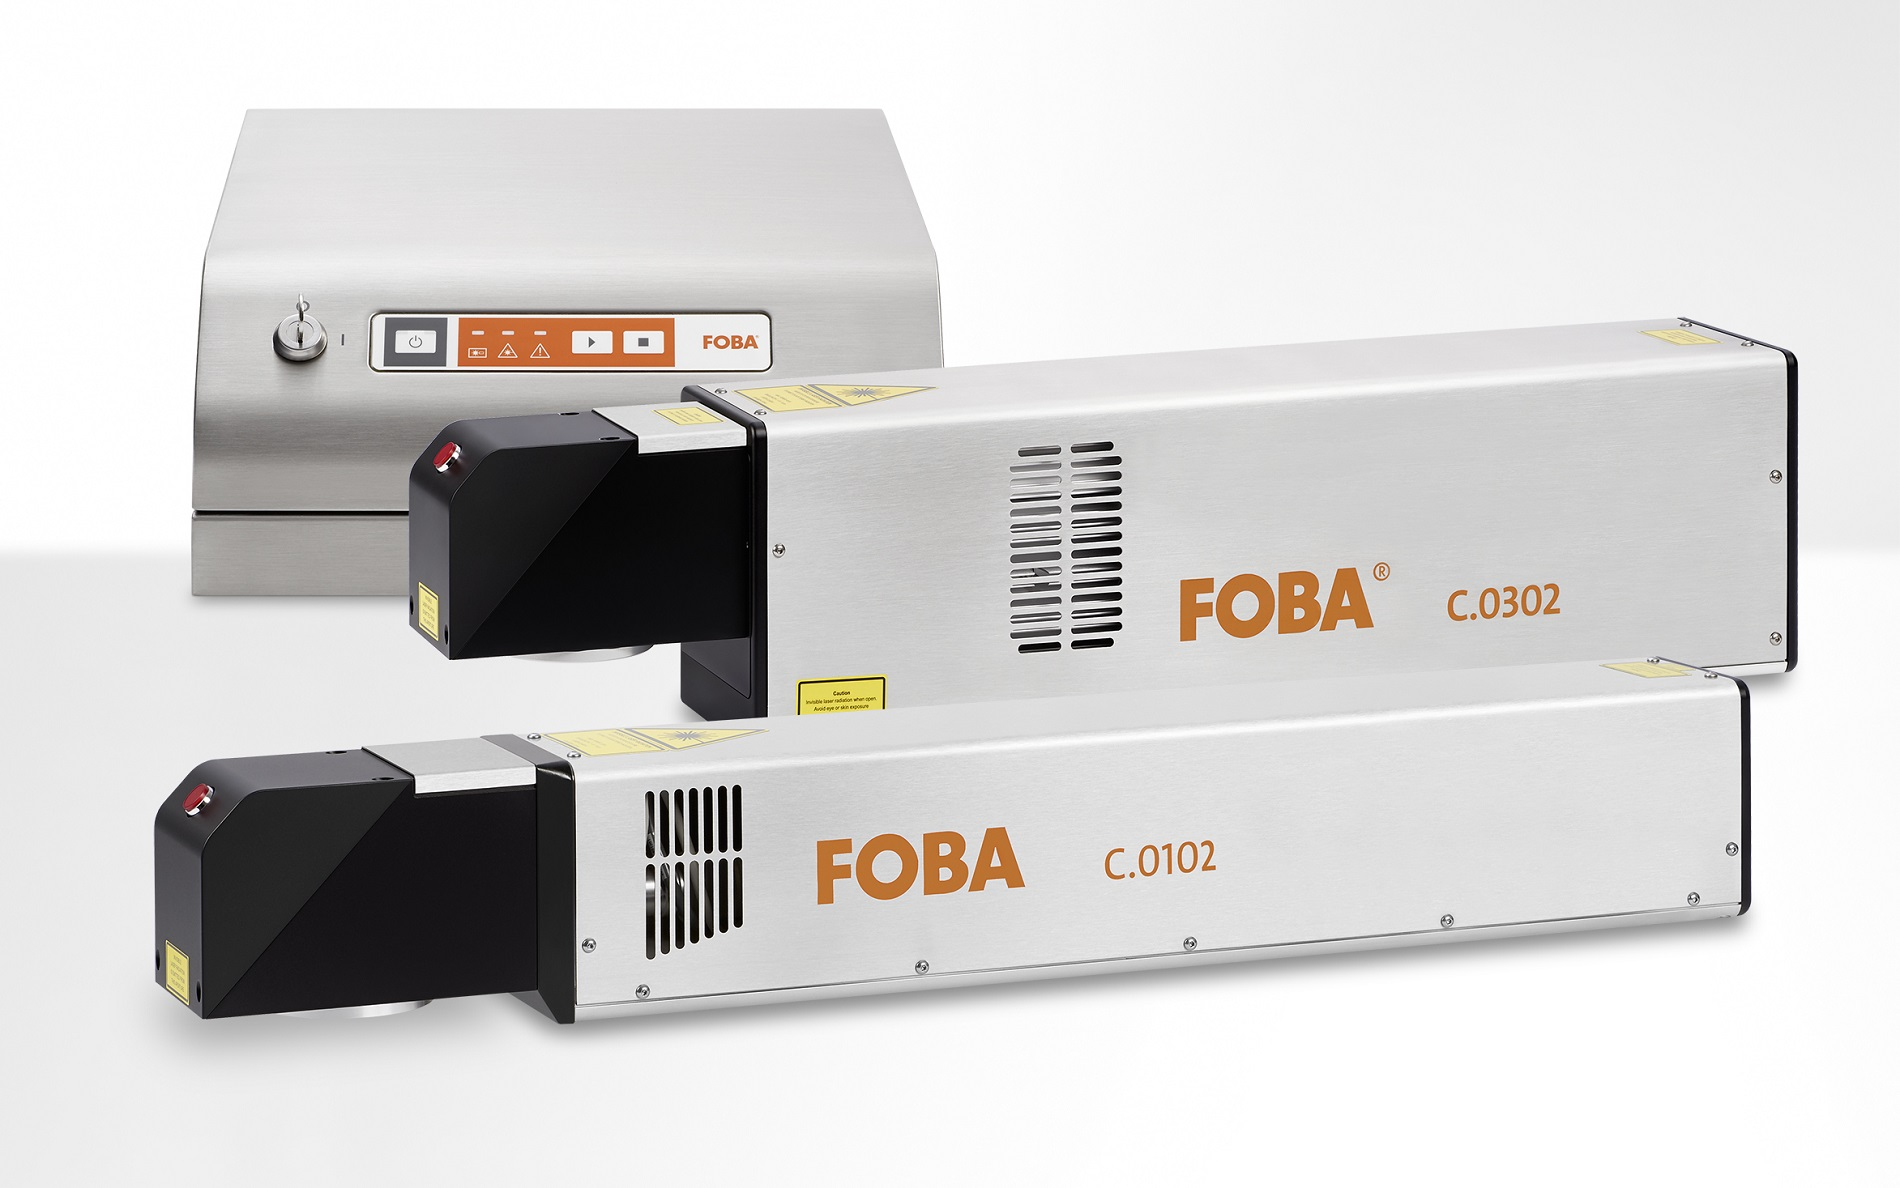 FOBA C.0102 and C.0302, 10- and 30-Watt-CO2-laser marking systems of the latest generation, offering a wide range of marking solutions for different materials and contents.